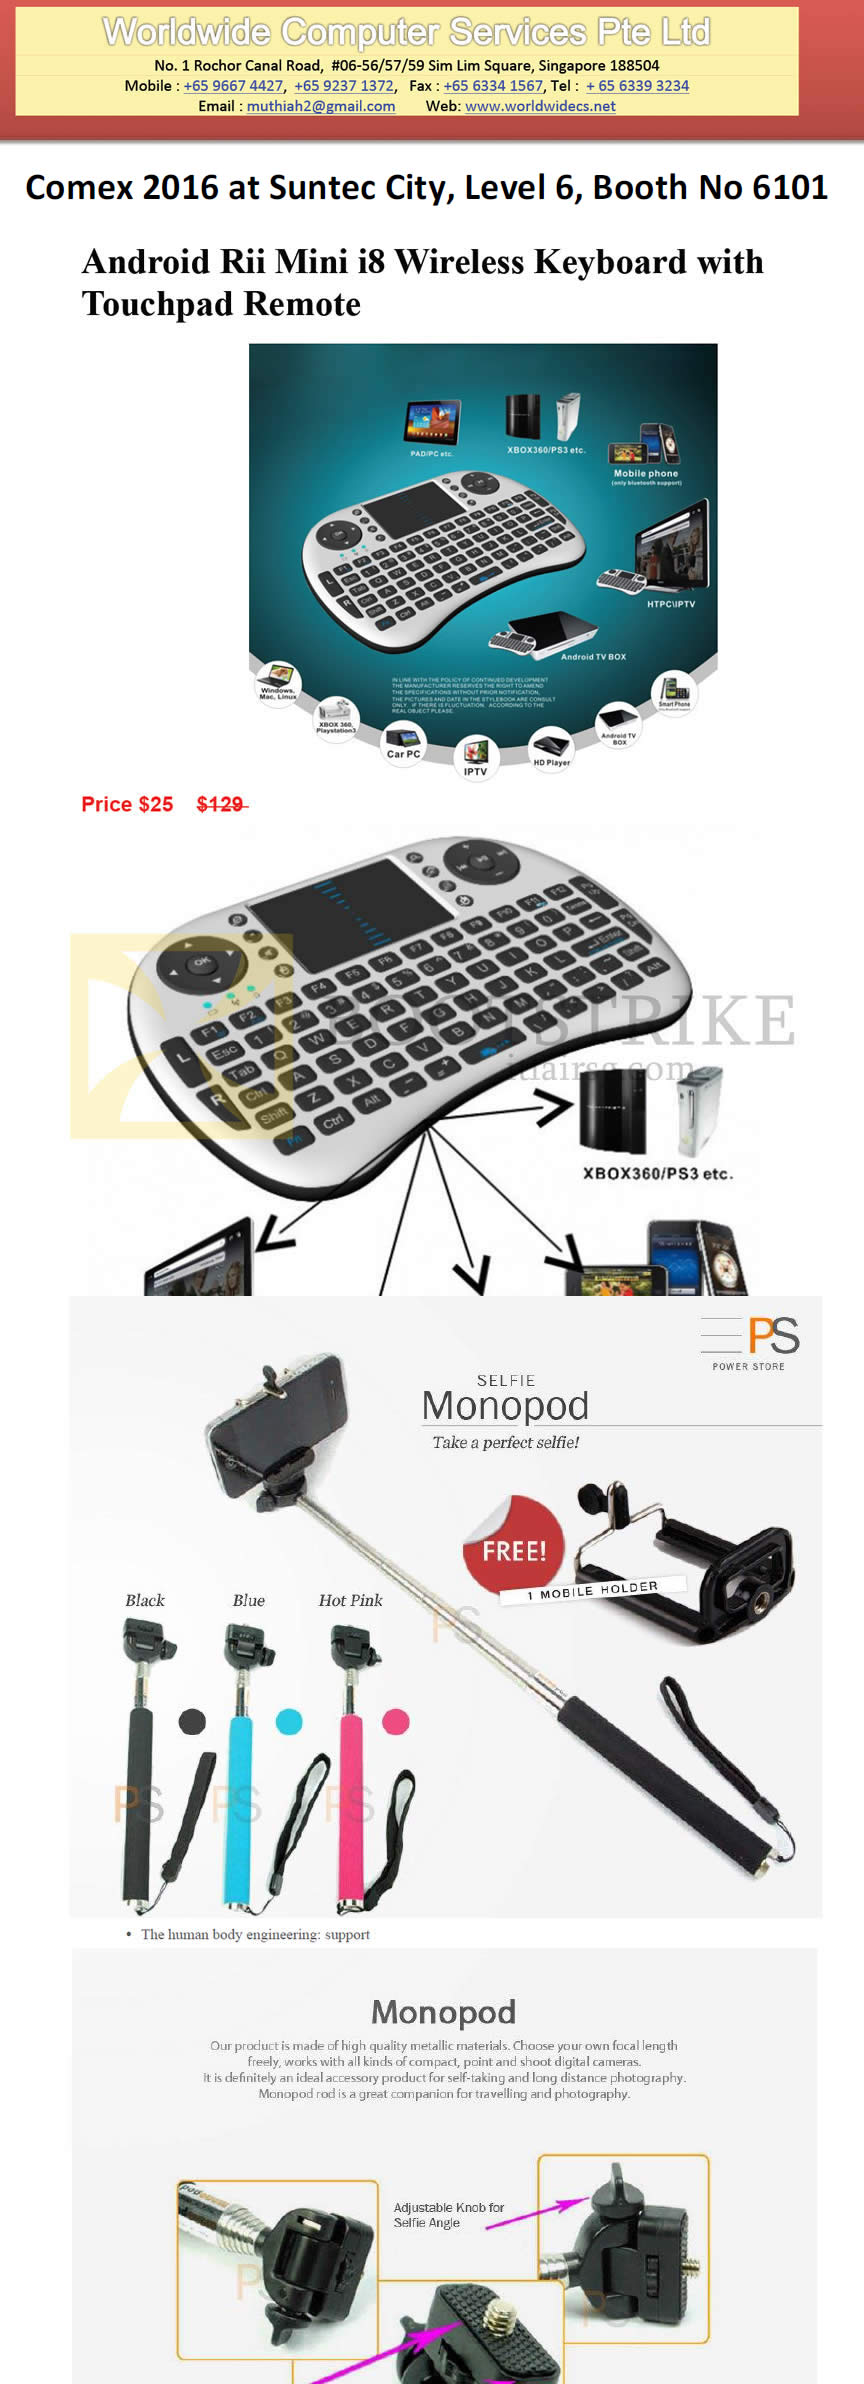 COMEX 2016 price list image brochure of Worldwide Computer Android Rii Mini I8 Wireless Mini Keyboard